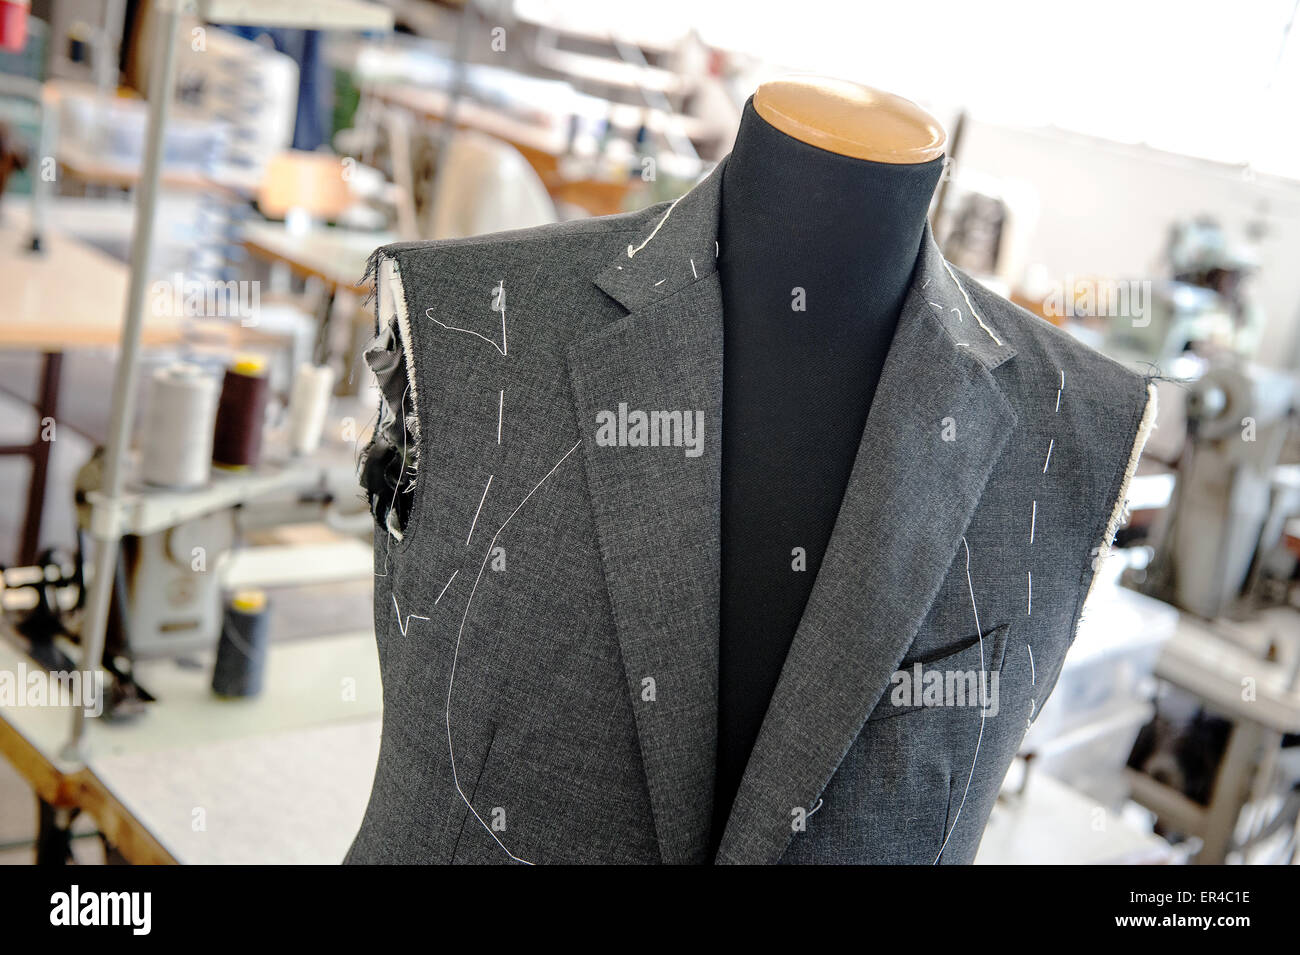 Close Up of Custom Made Hand Sewn Jacket in Progress on Mannequin Inside Clothing Manufacturing Factory or Shop - Stock Image